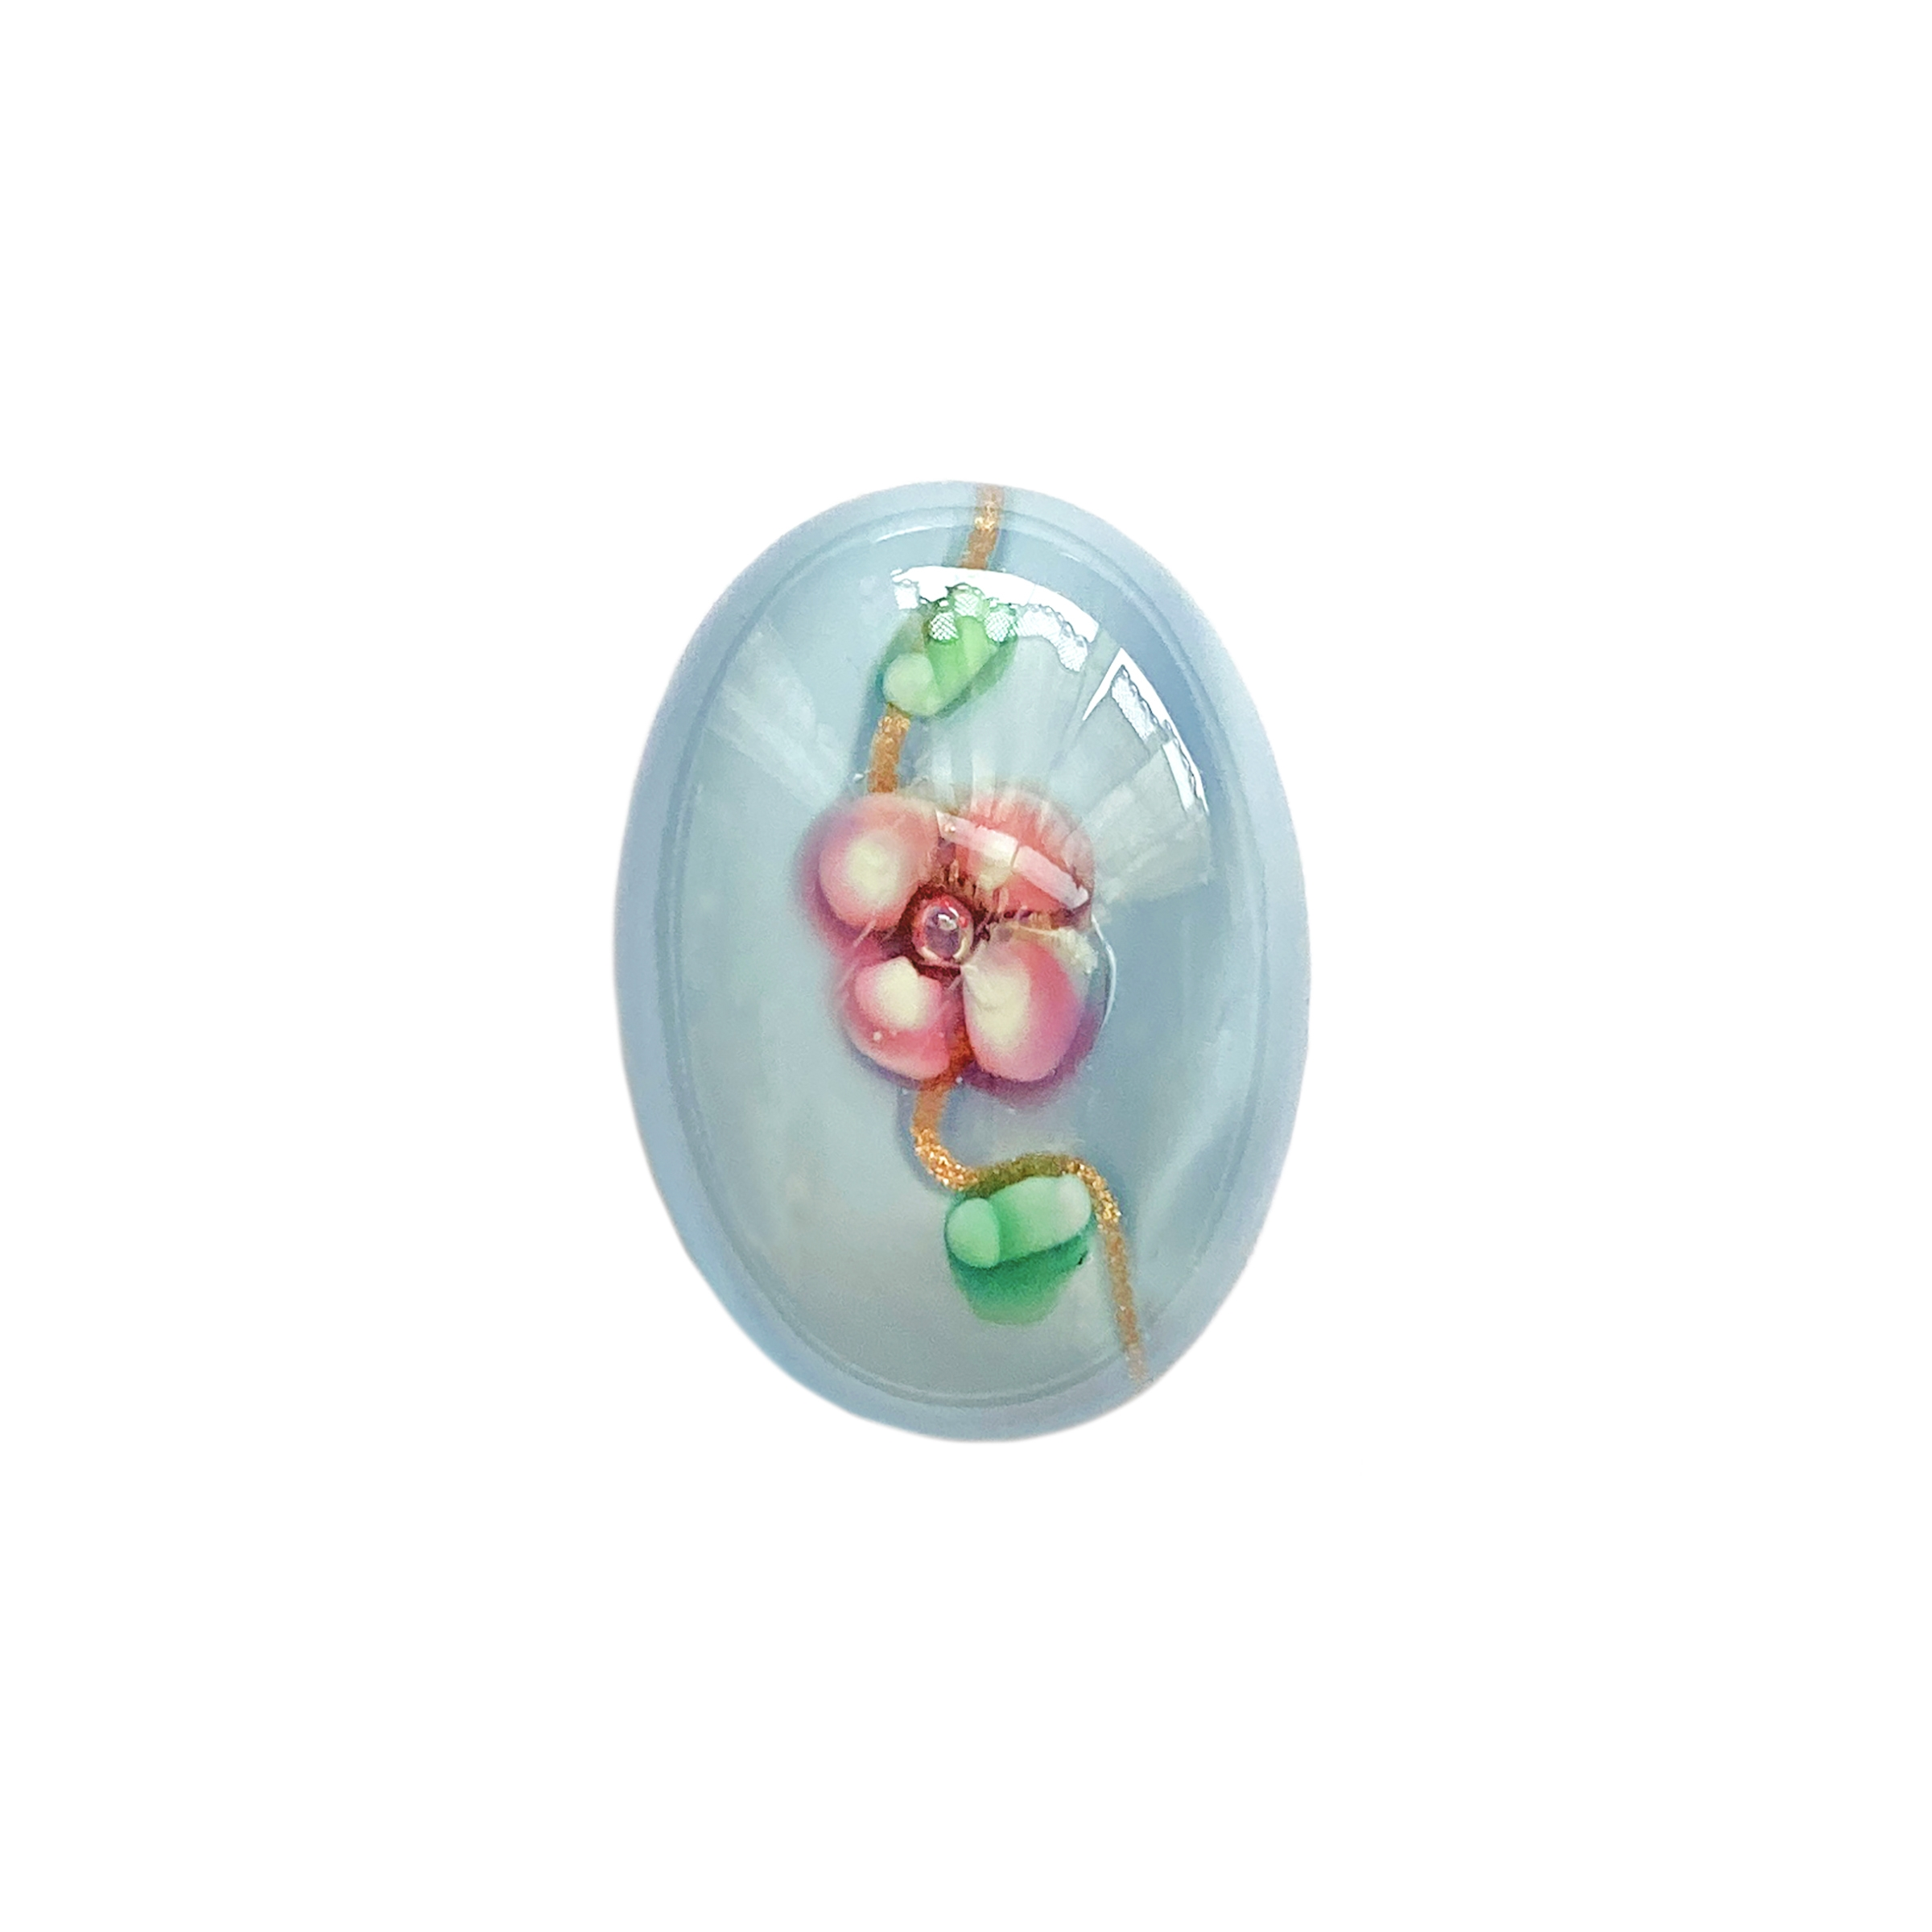 floral aqua lampwork cabochon, handmade, Czech, lampwork stone, lampwork cabochon, floral aqua stone, handmade stone, pink flowers, floral inclusion, 25x18mm, flat back stone, cabochon stone, jewelry cabochon, jewelry making, vintage supplies, 01496